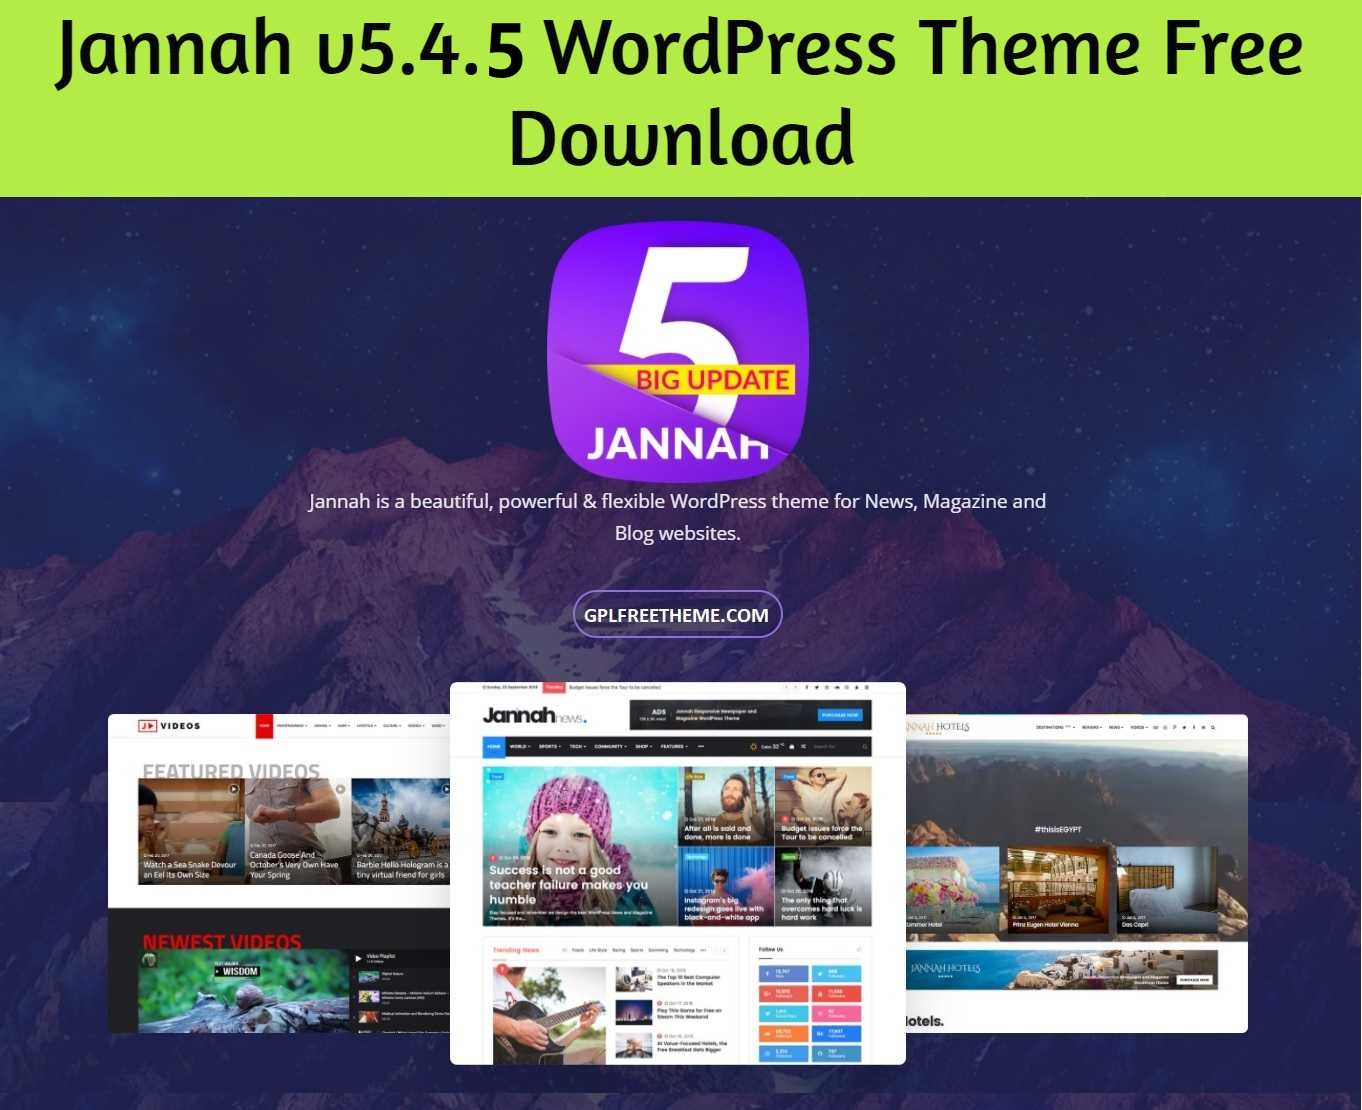 Jannah 5.4.5 WordPress Theme Free Download [Activated]